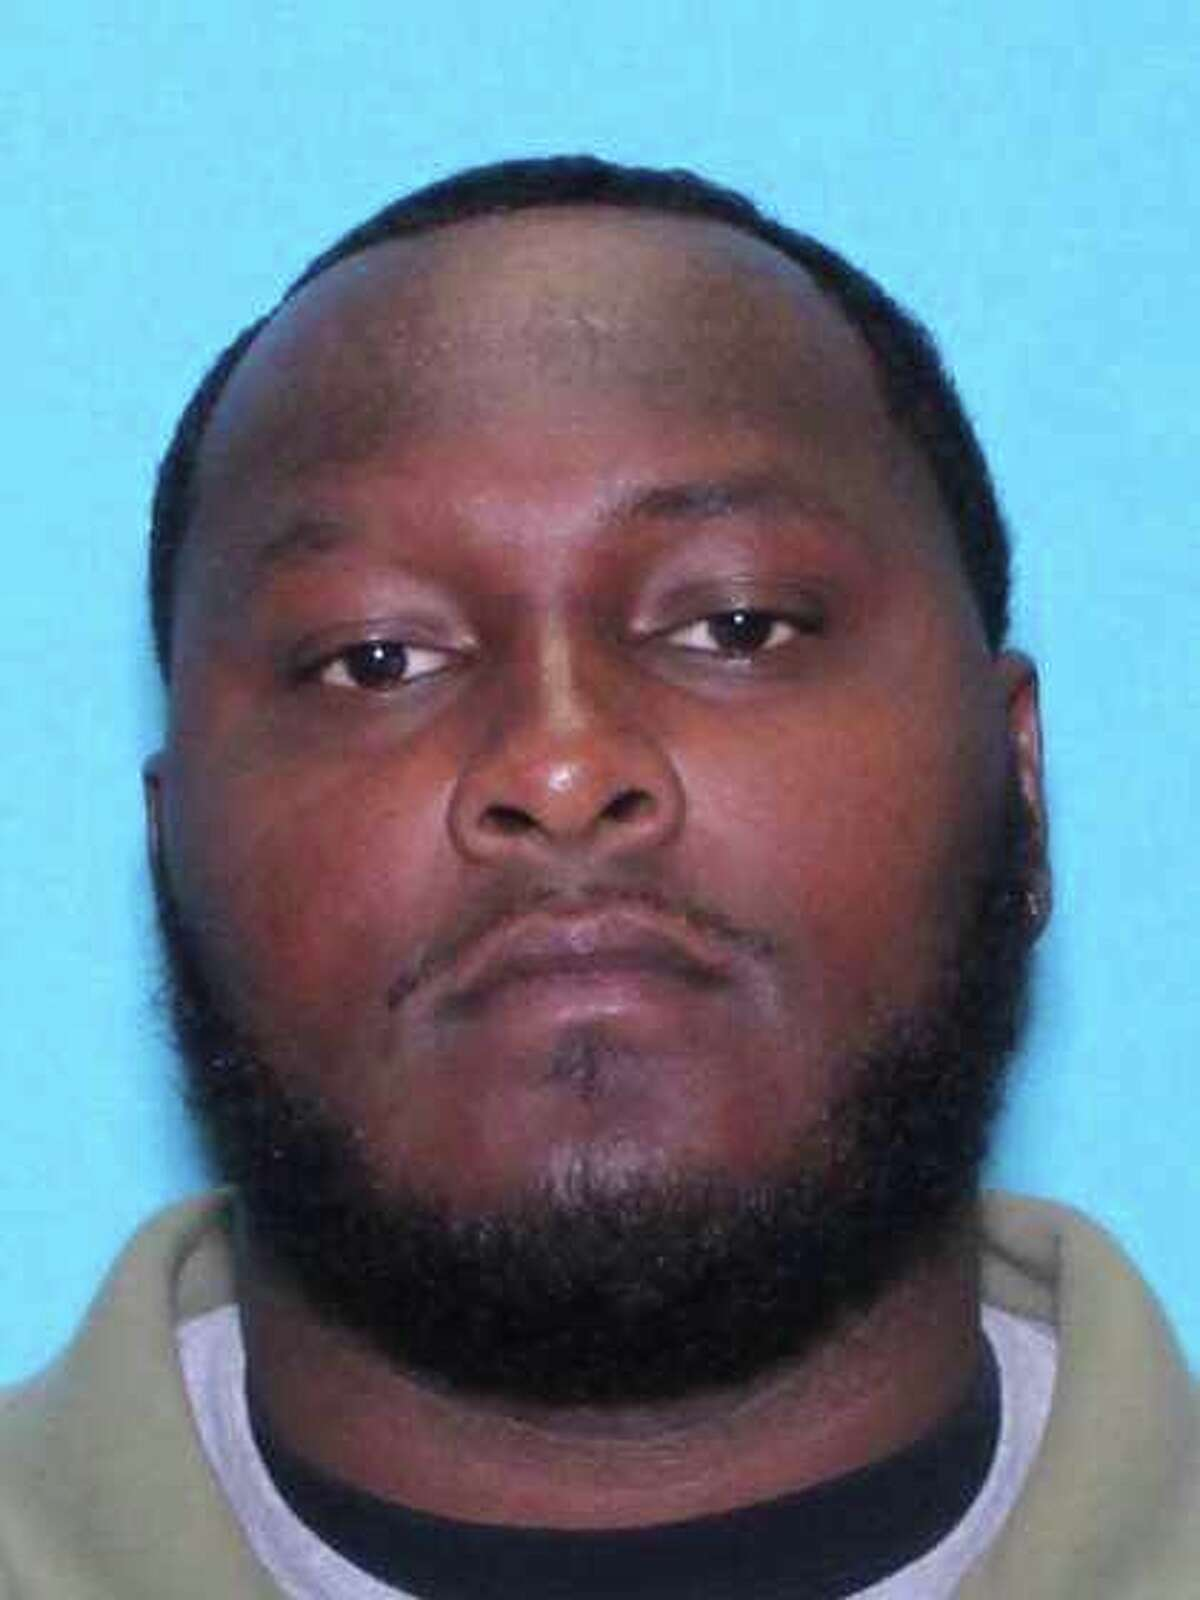 Juniad Hashim Mehmood, 27, is in custody in the shooting deaths of three children at a Texas City apartment on Jan. 3, 2018. He claimed responsibility in the deaths of 2-month-old Ashanti Mehmood; Prince Larry Brown, almost 2; and 5-year-old Angela Pilot.He was the father of the youngest child.